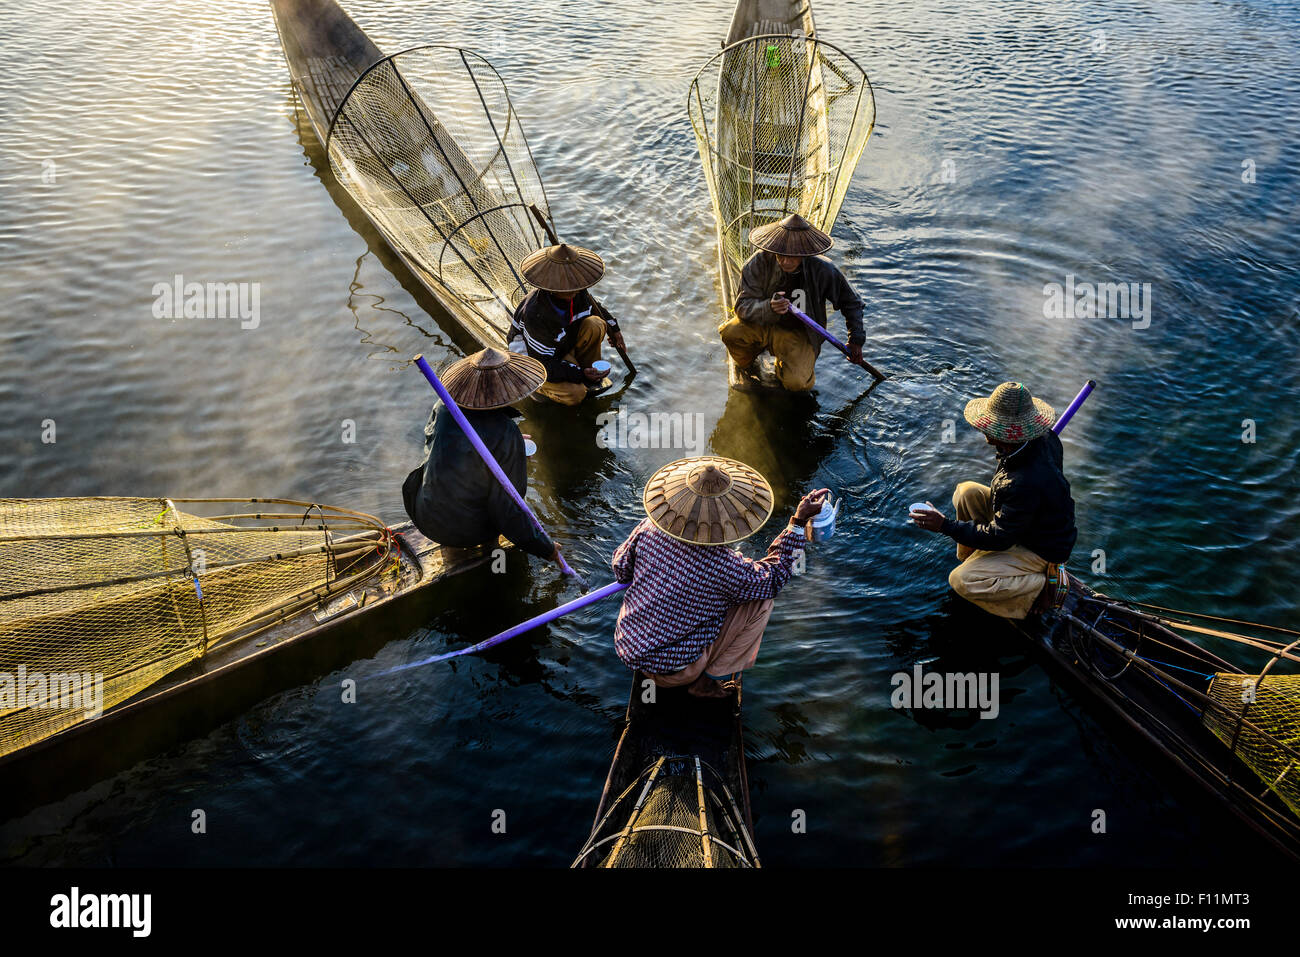 High angle view of Asian fishermen fishing in canoes on river - Stock Image